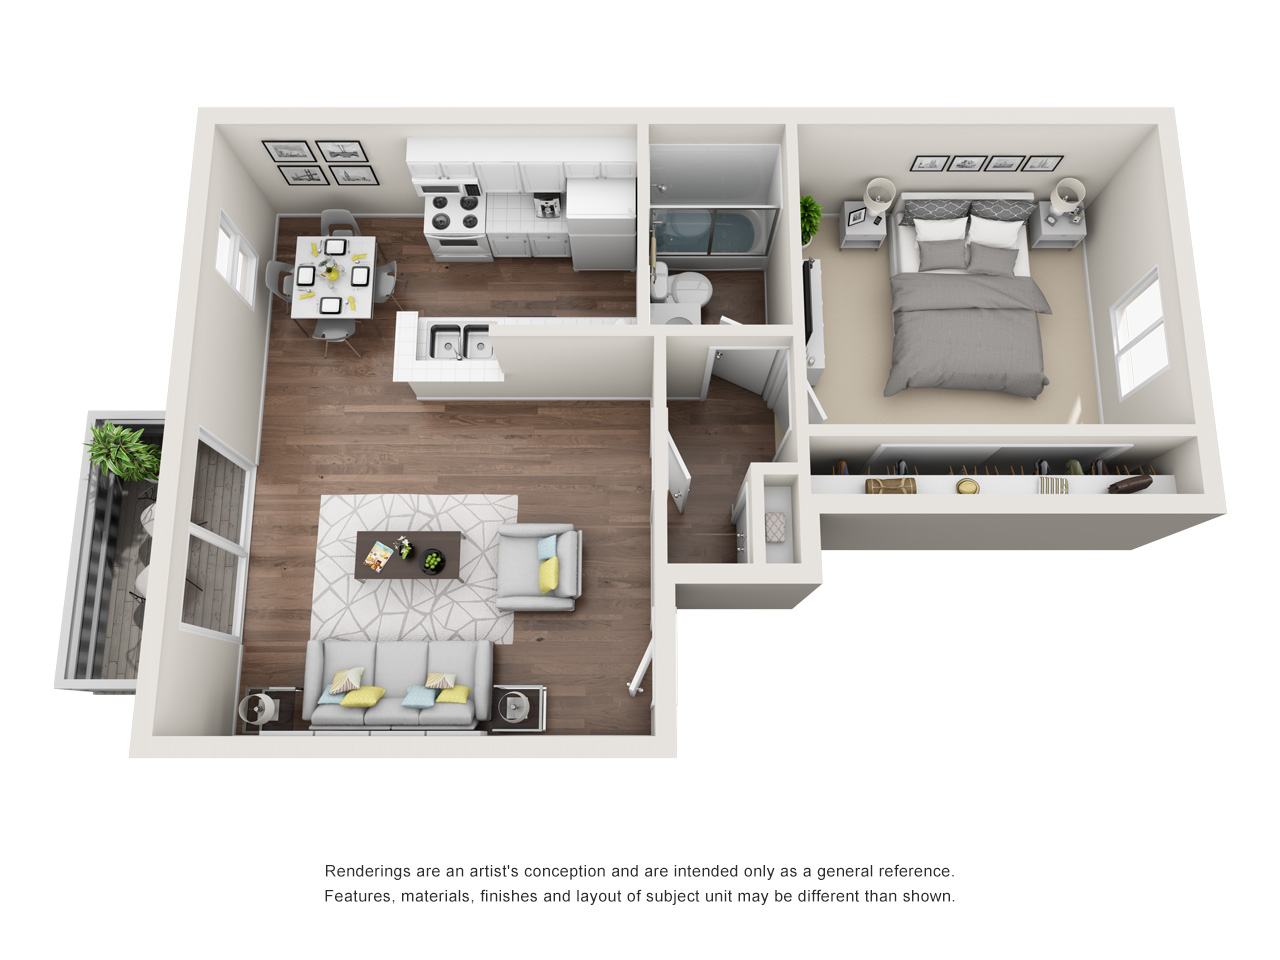 1 Bedroom Plan A (Upstairs Balcony)